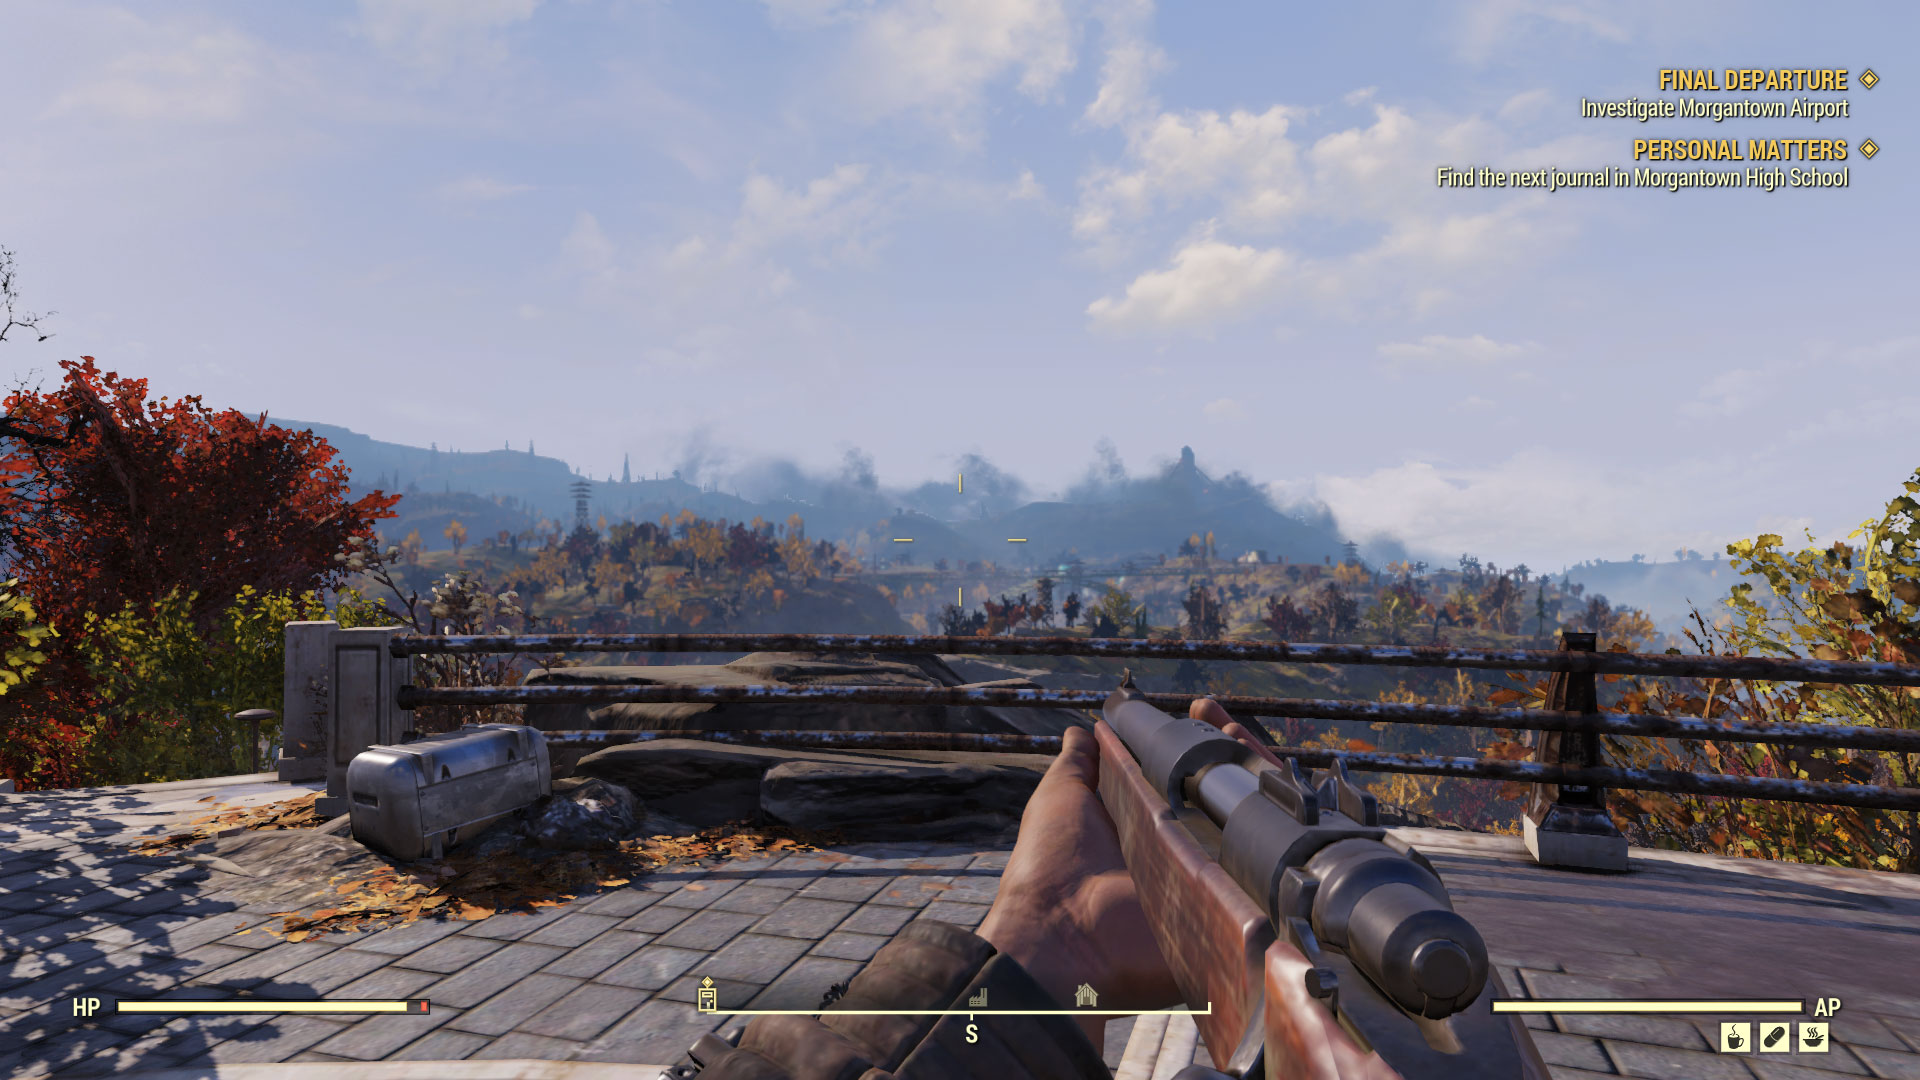 Fallout 76's PC beta benchmarked: Here are the settings to tweak for